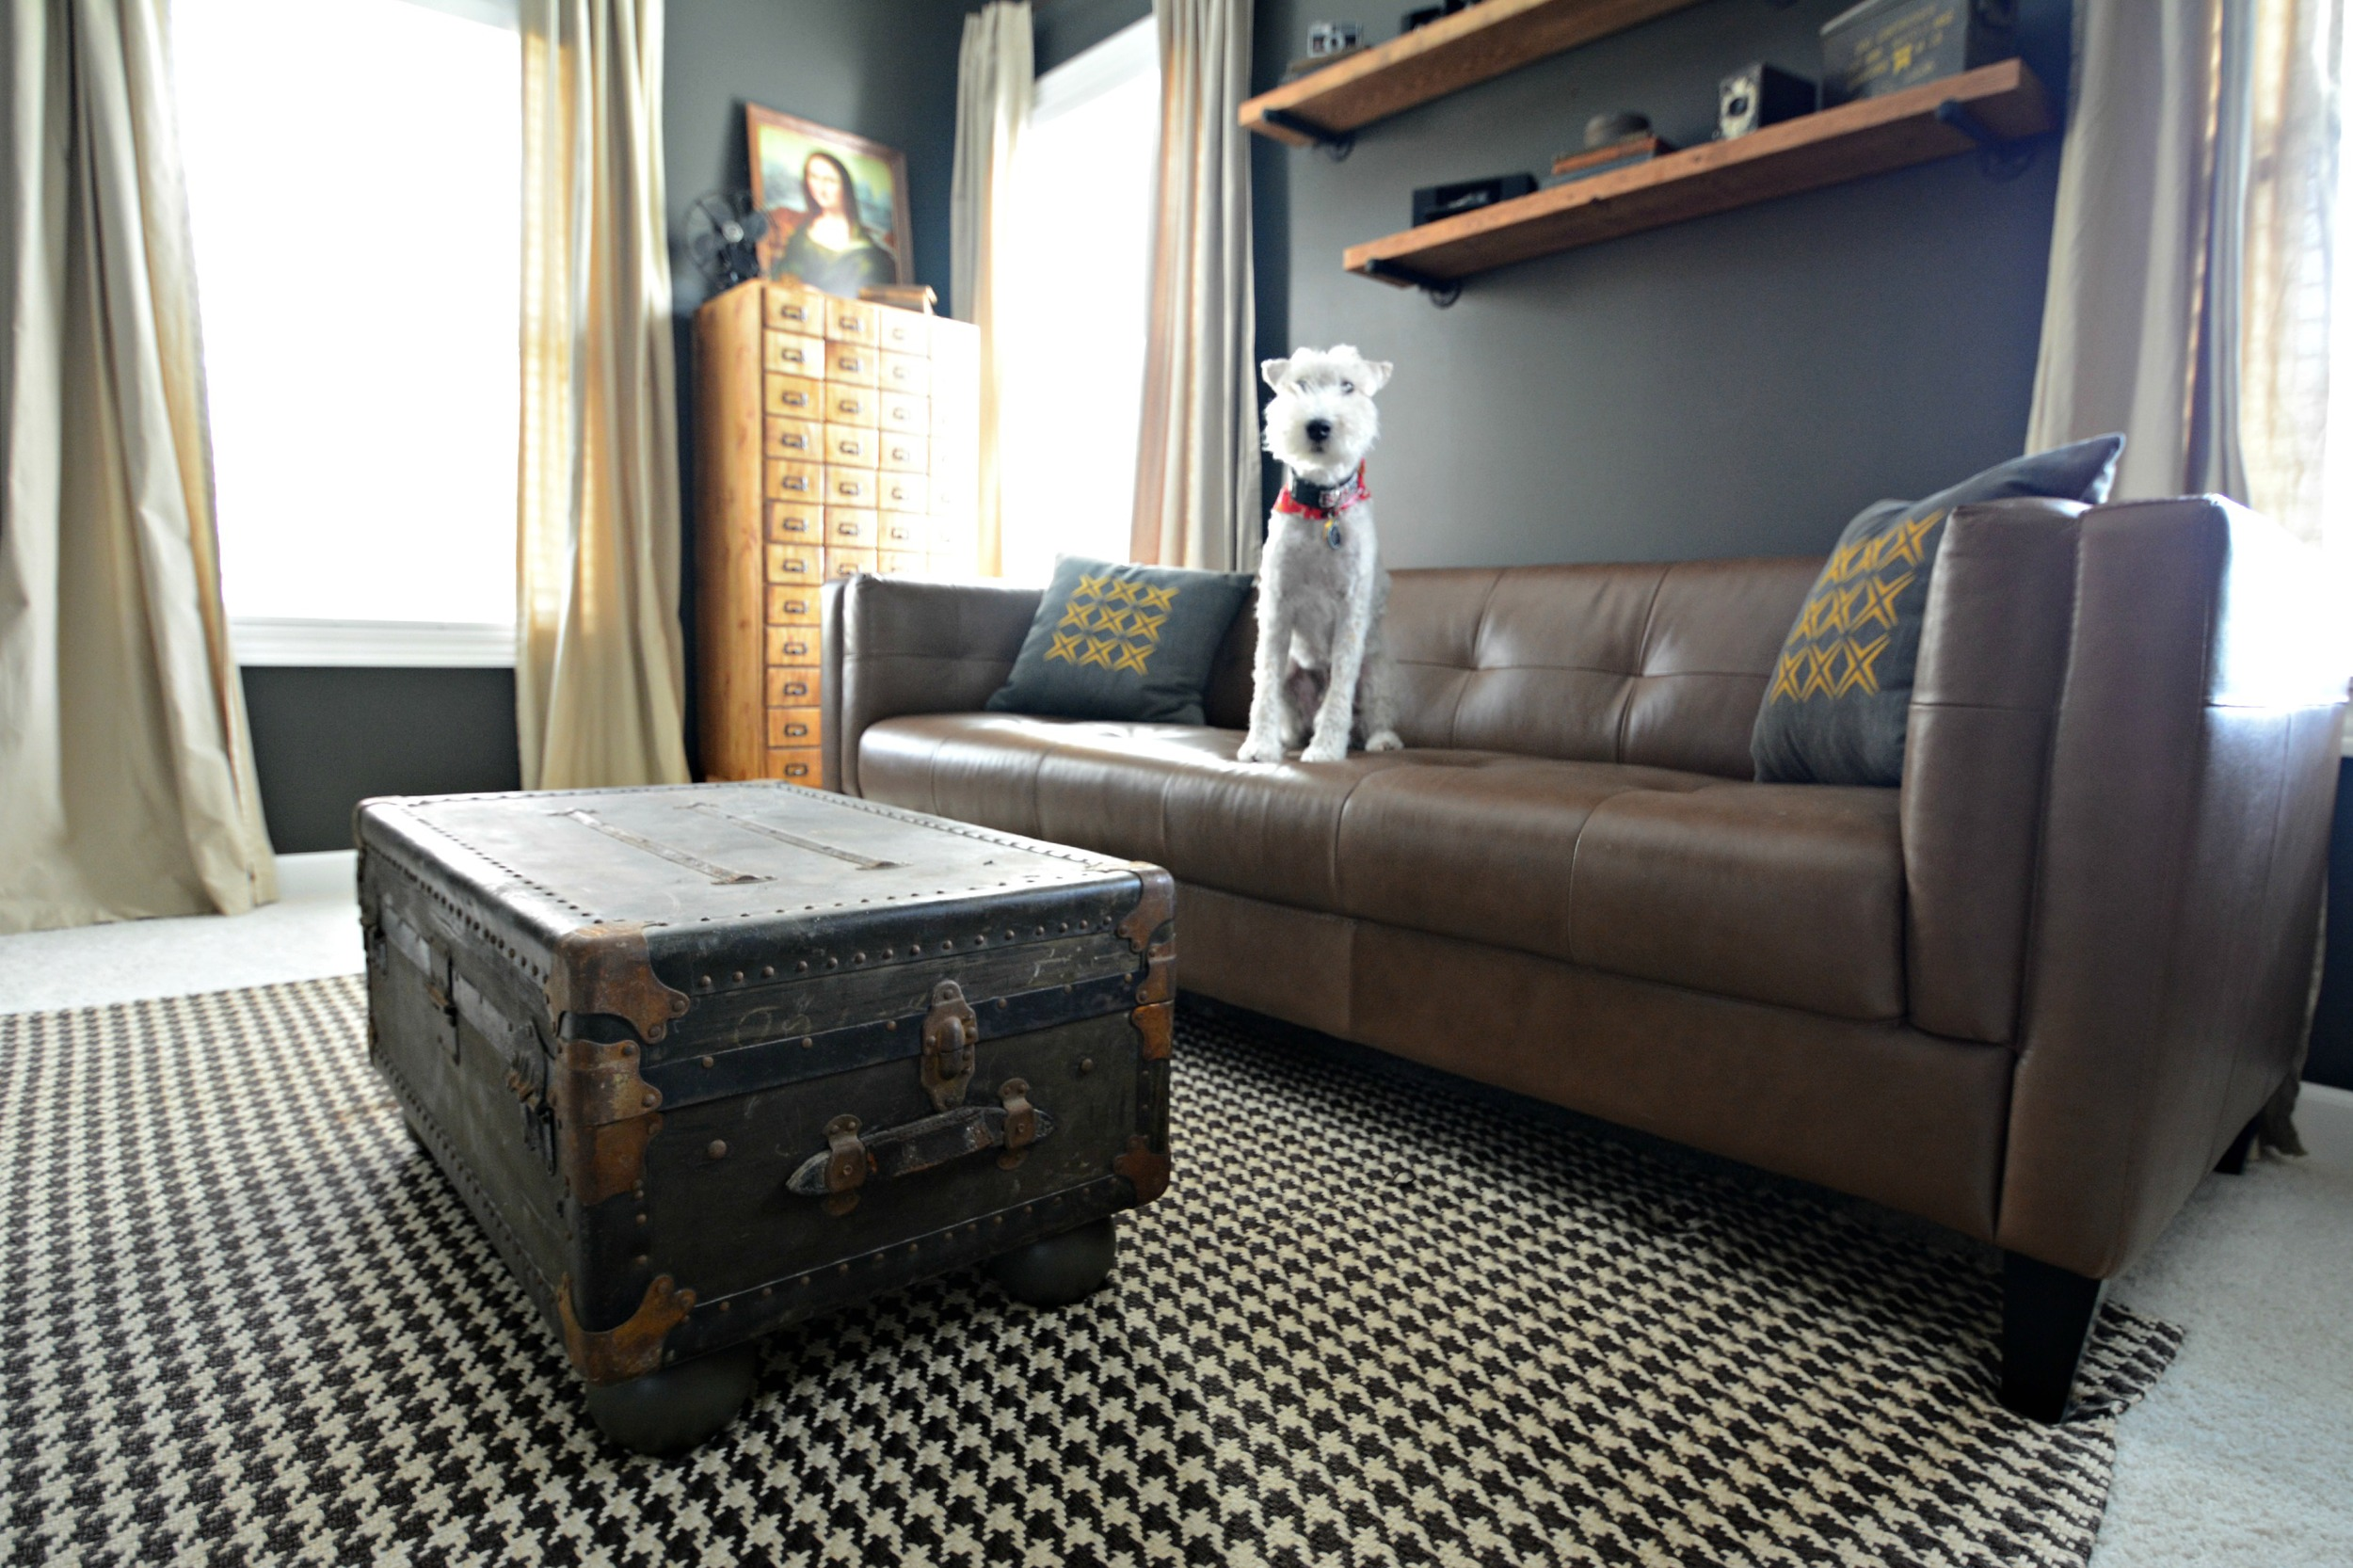 Vintage Trunk Made Into a Coffee Table